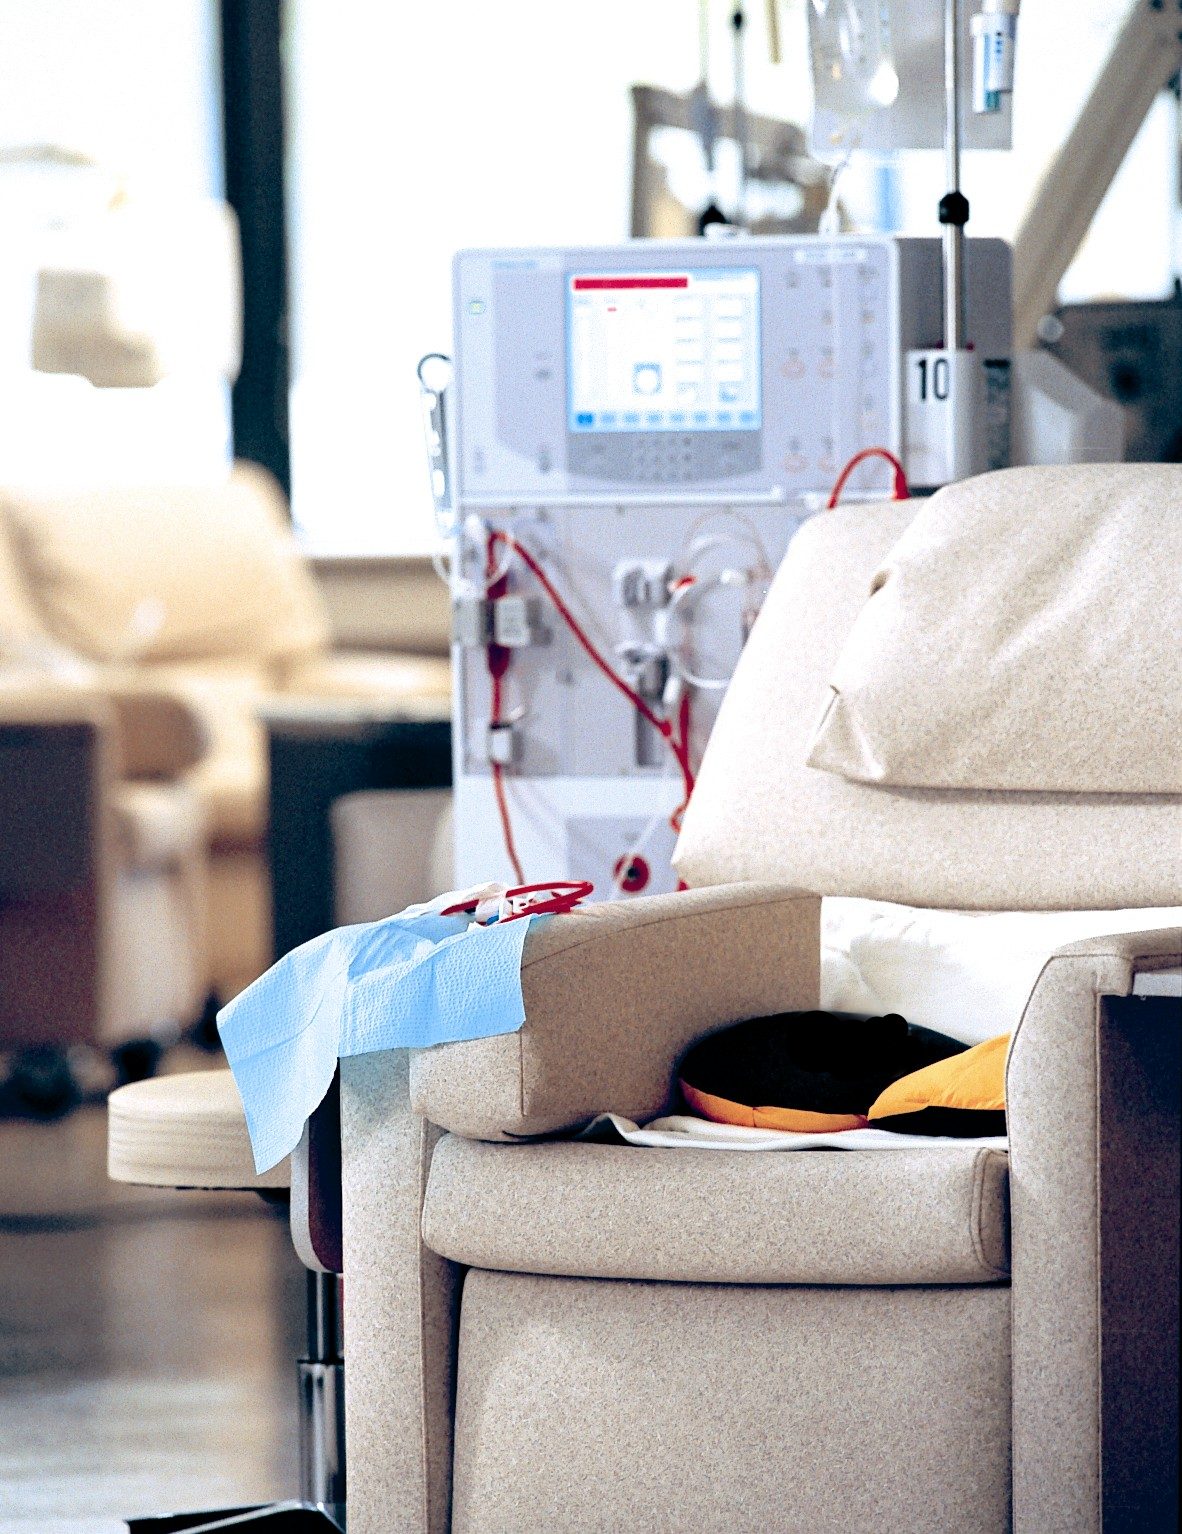 dialysis chair_C.F.-06.21.13.jpg